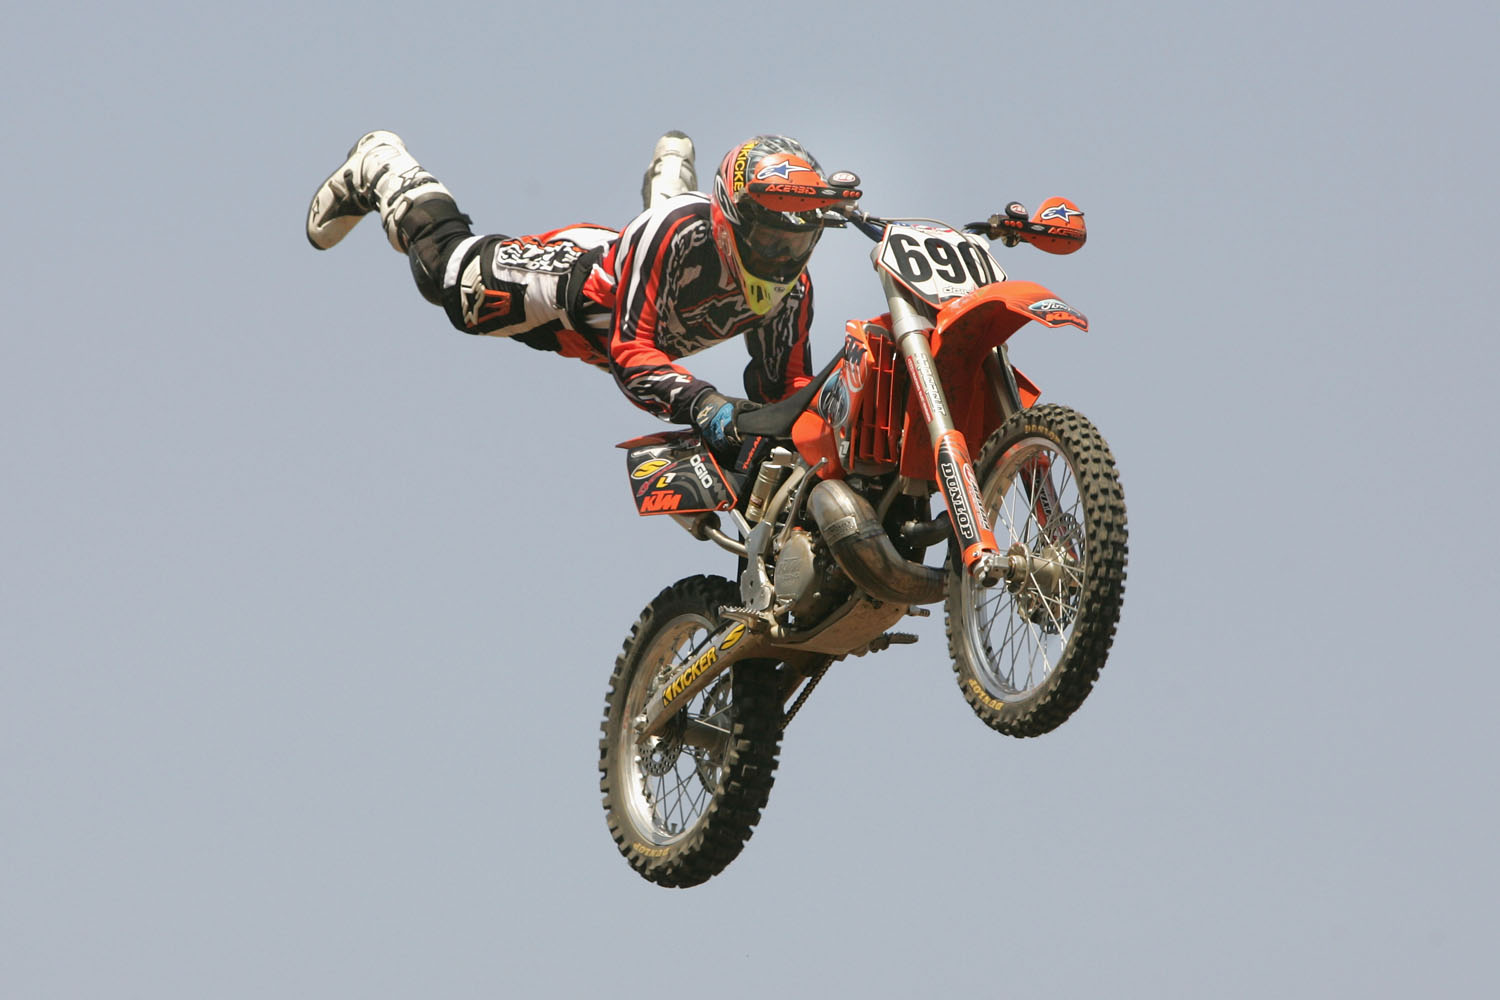 Kenny Bartram perfroms a trick during the Moto X Freestyle final at X Games Eleven on August 6, 2005 at the Home Depot Center in Los Angeles, California.